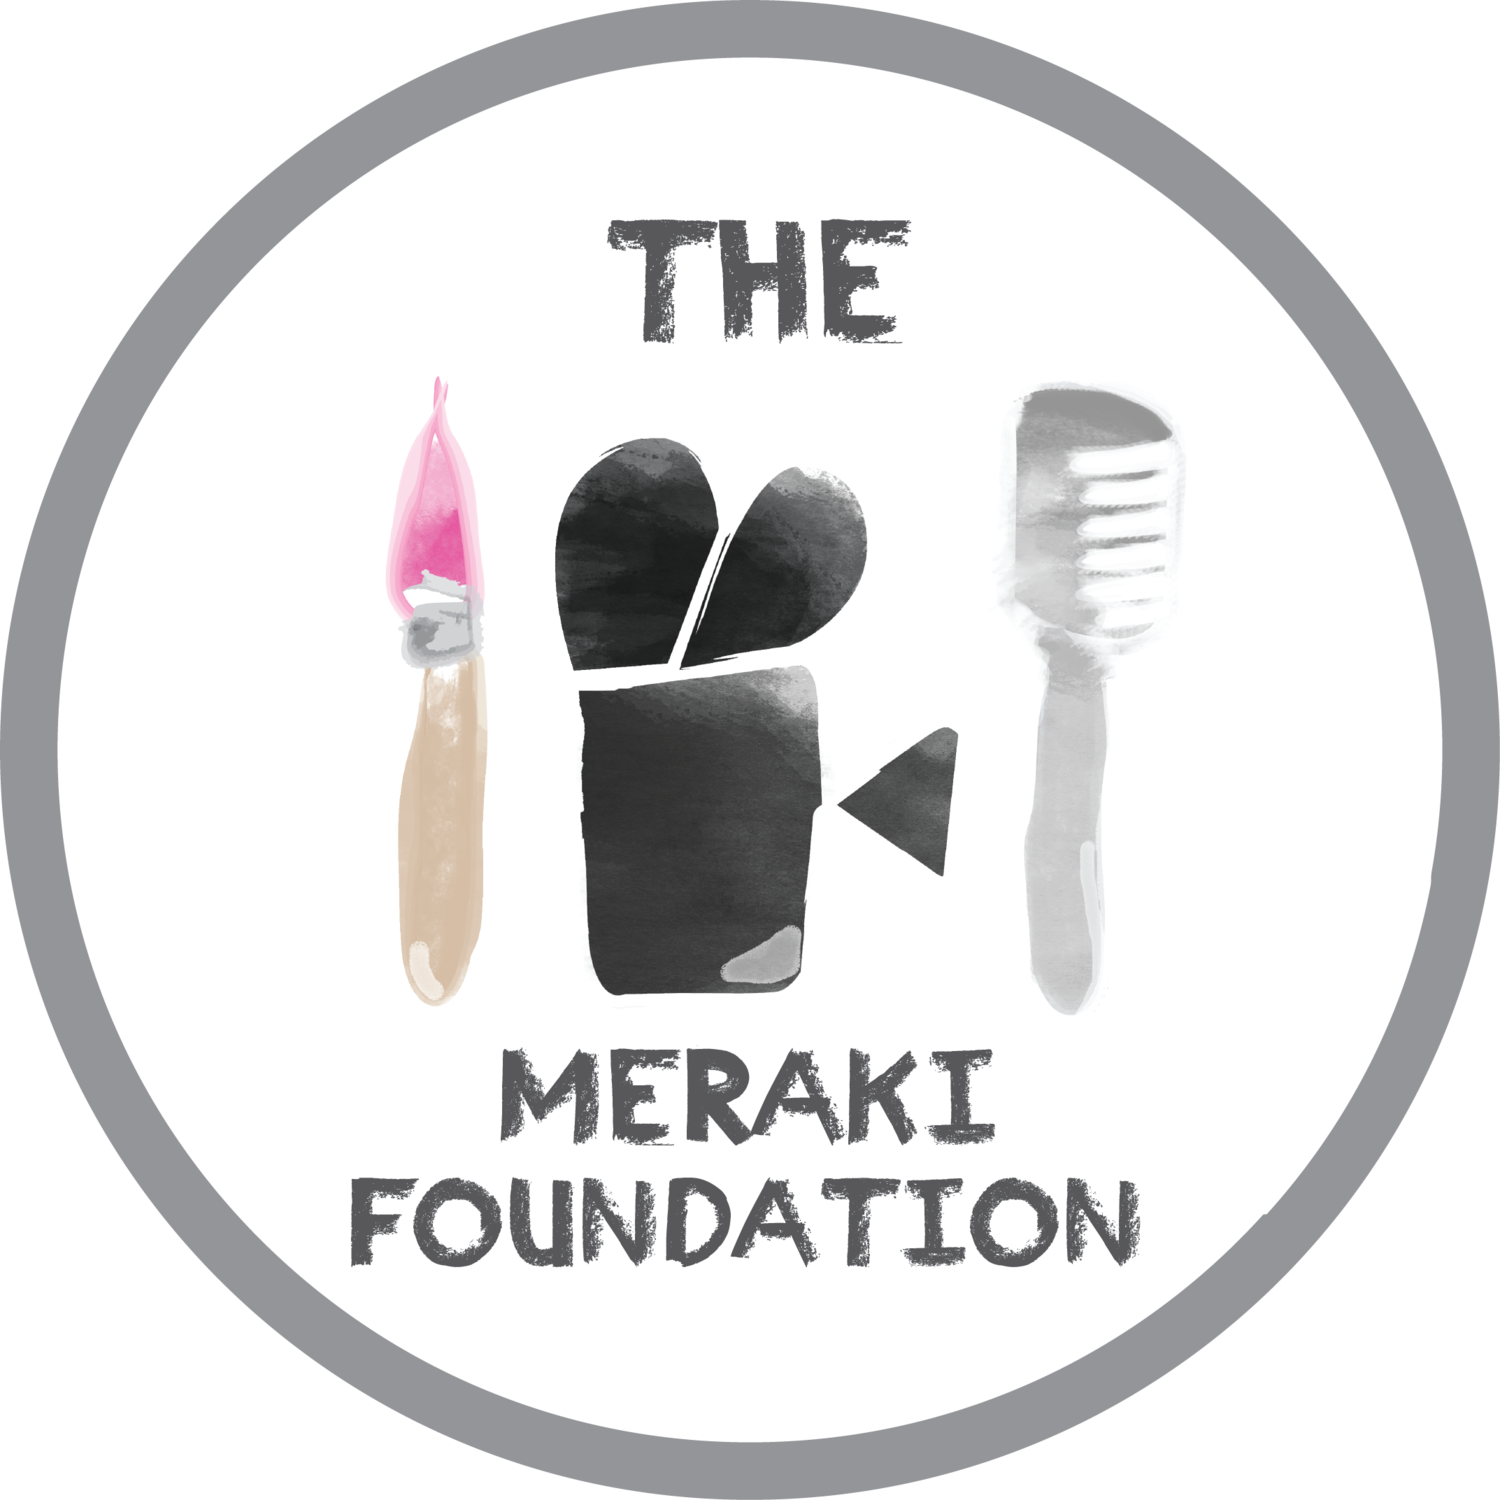 The Meraki Foundation